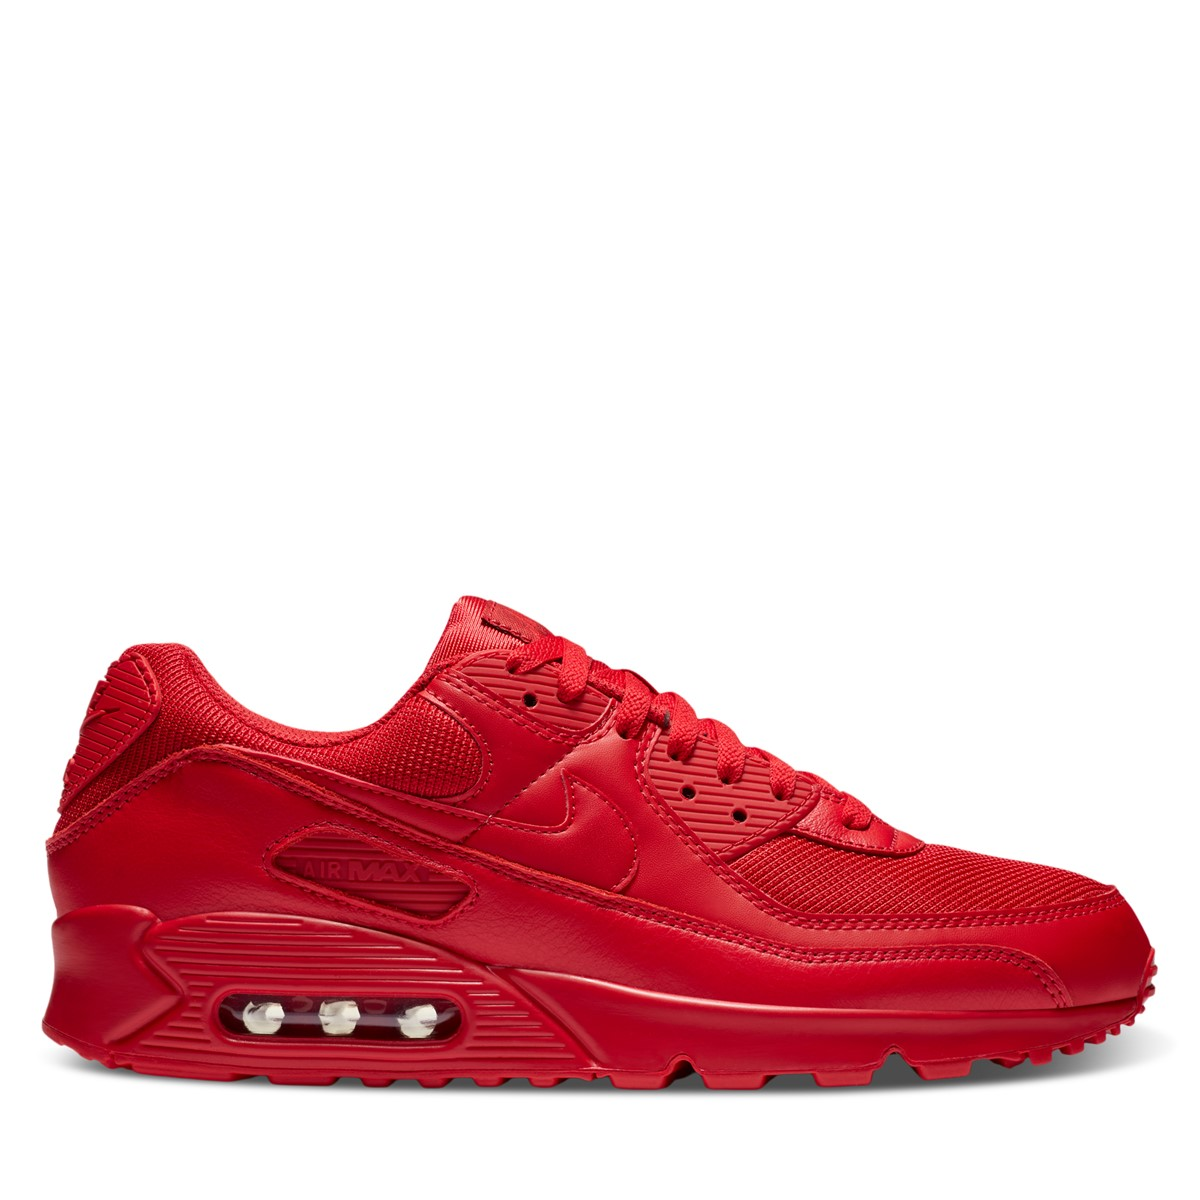 Men's Air Max 90 Sneakers in Red